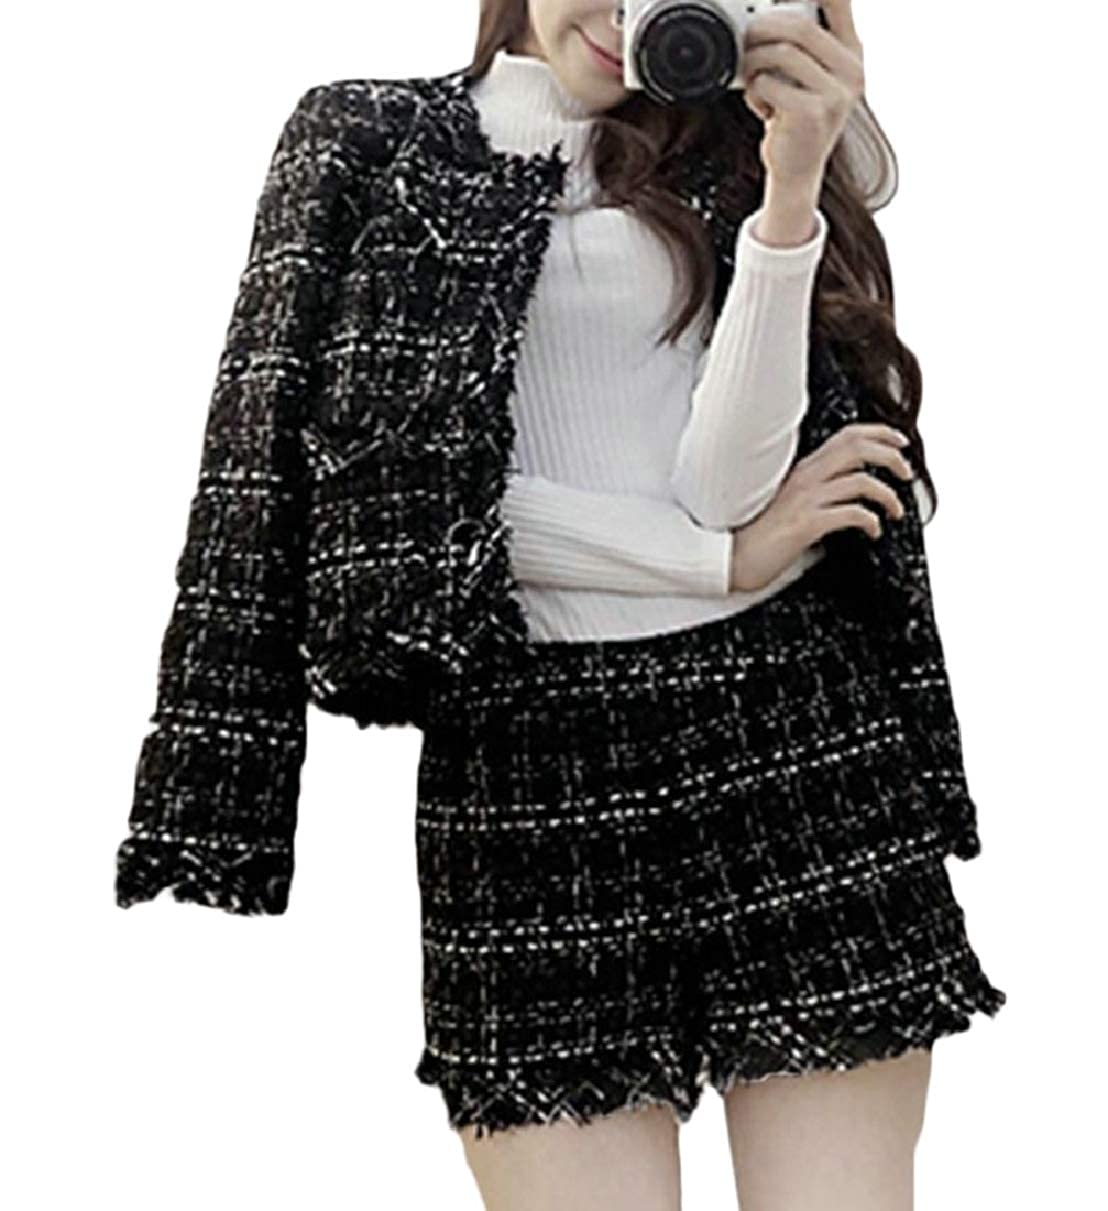 ZXFHZS Women Fashion Two-Piece Sets Plaid Outfits Tweed Pearls Skirt Suit